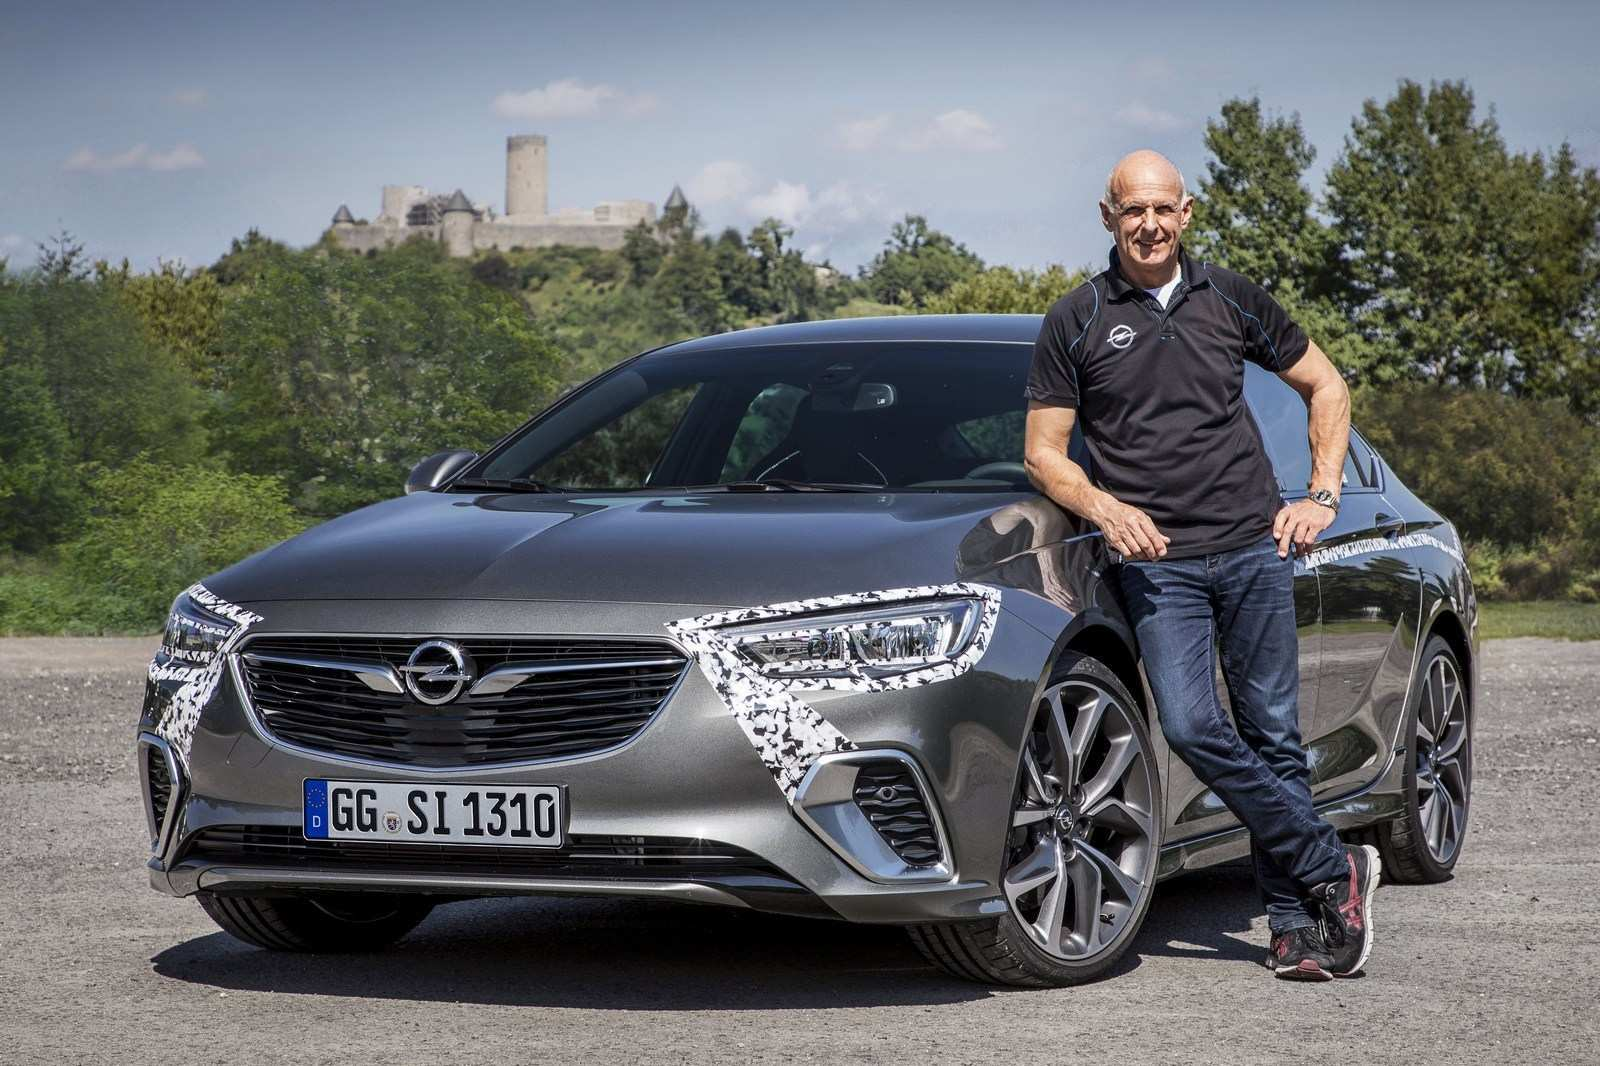 40 Great Opel Insignia Opc 2020 Picture with Opel Insignia Opc 2020